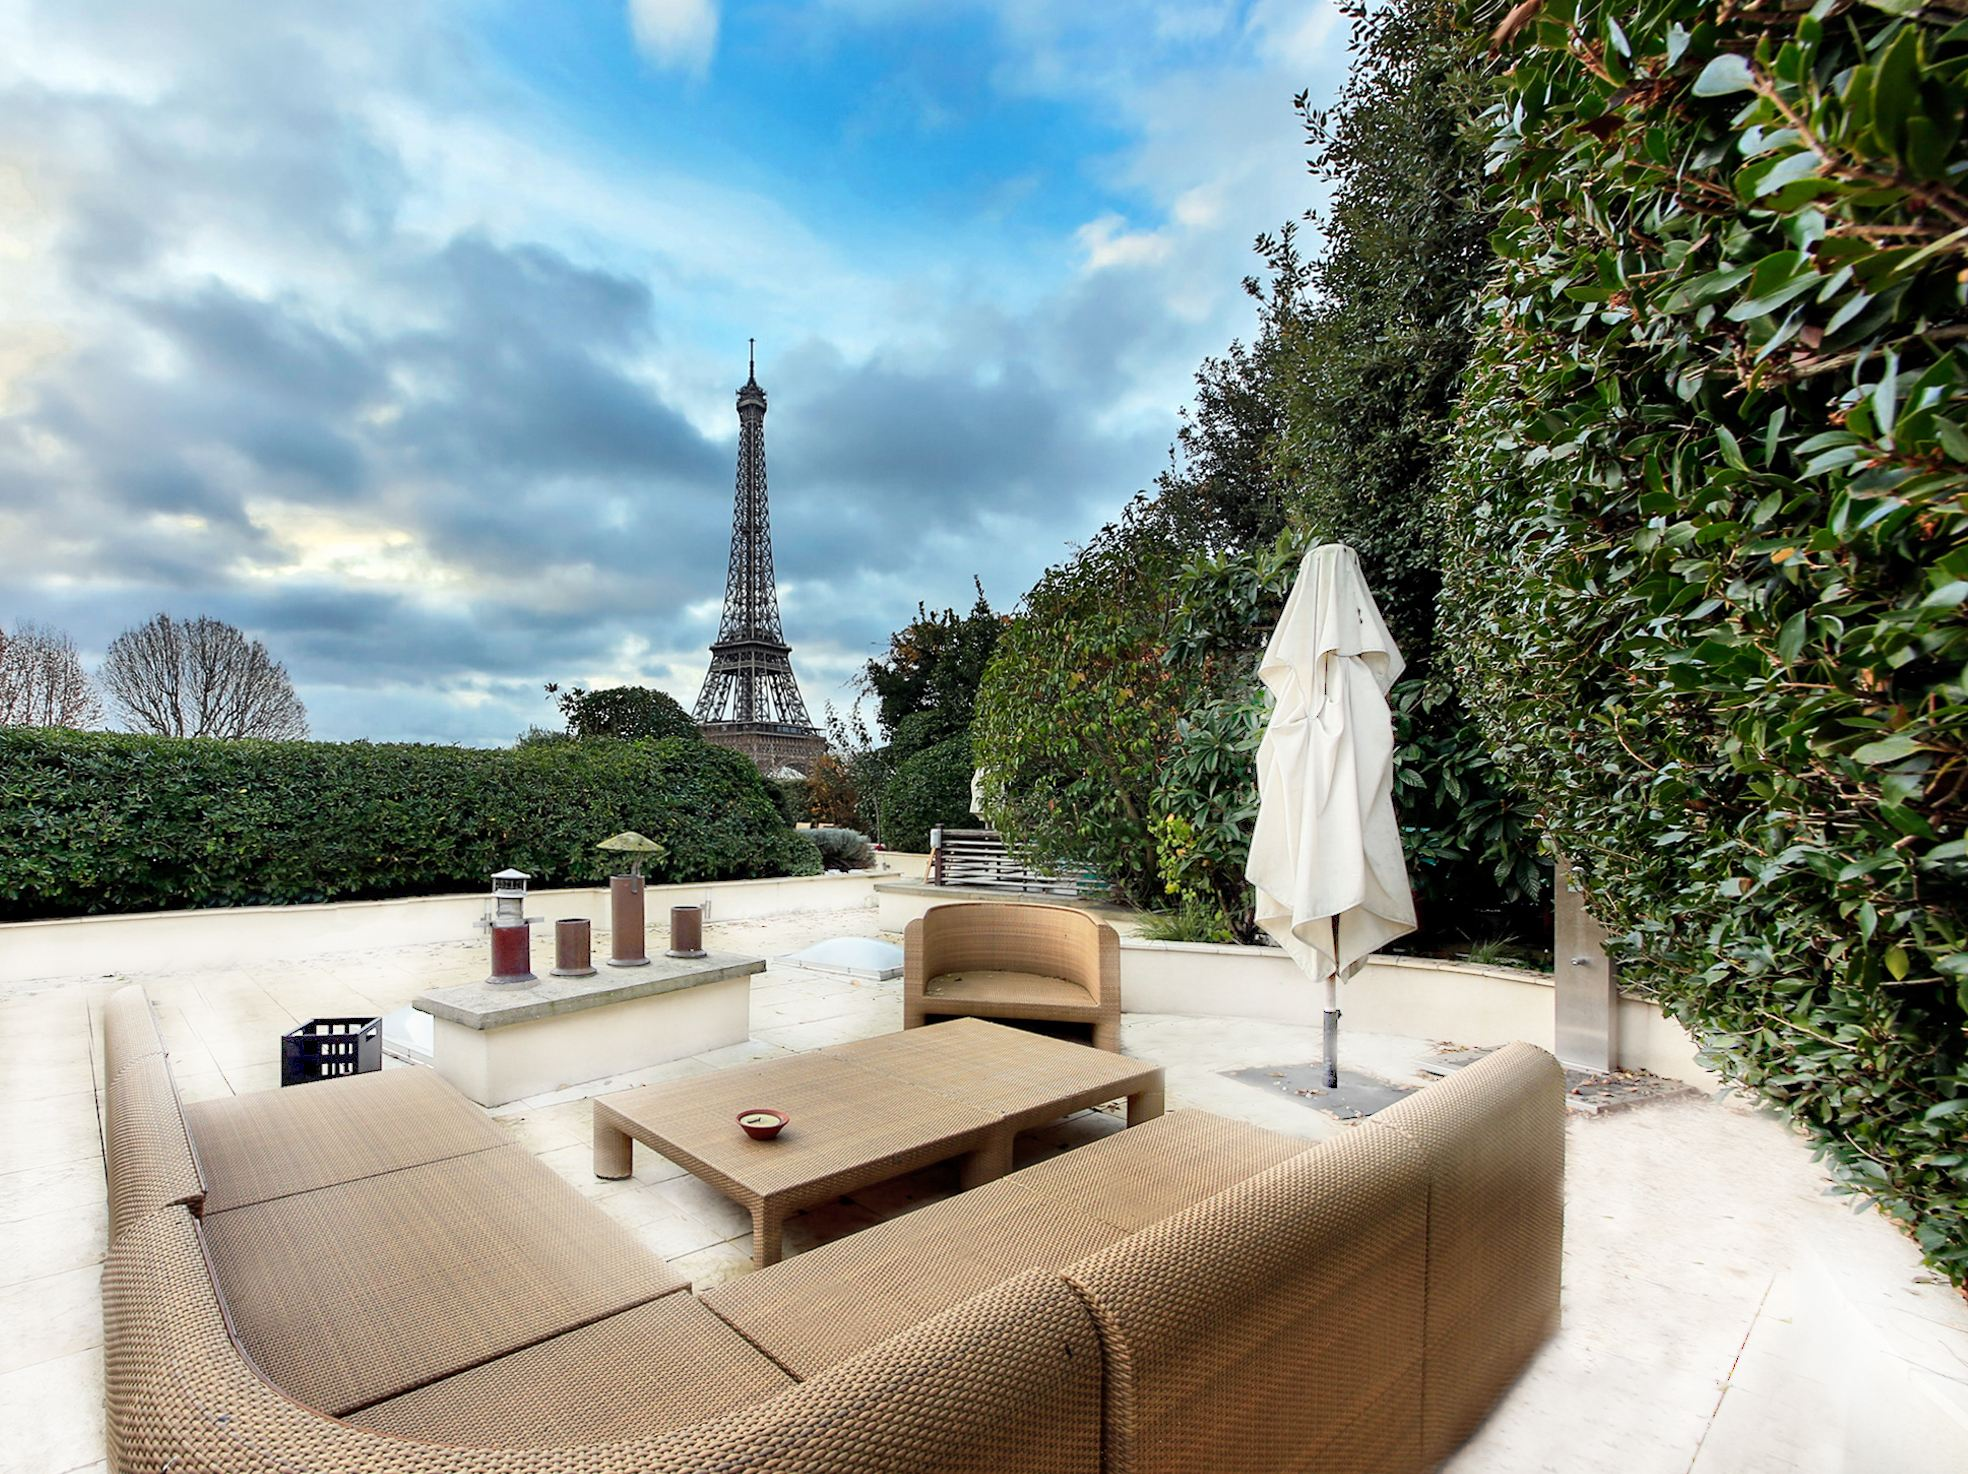 Property For Sale at Paris16 - Palais de Tokyo. All-round view of Paris